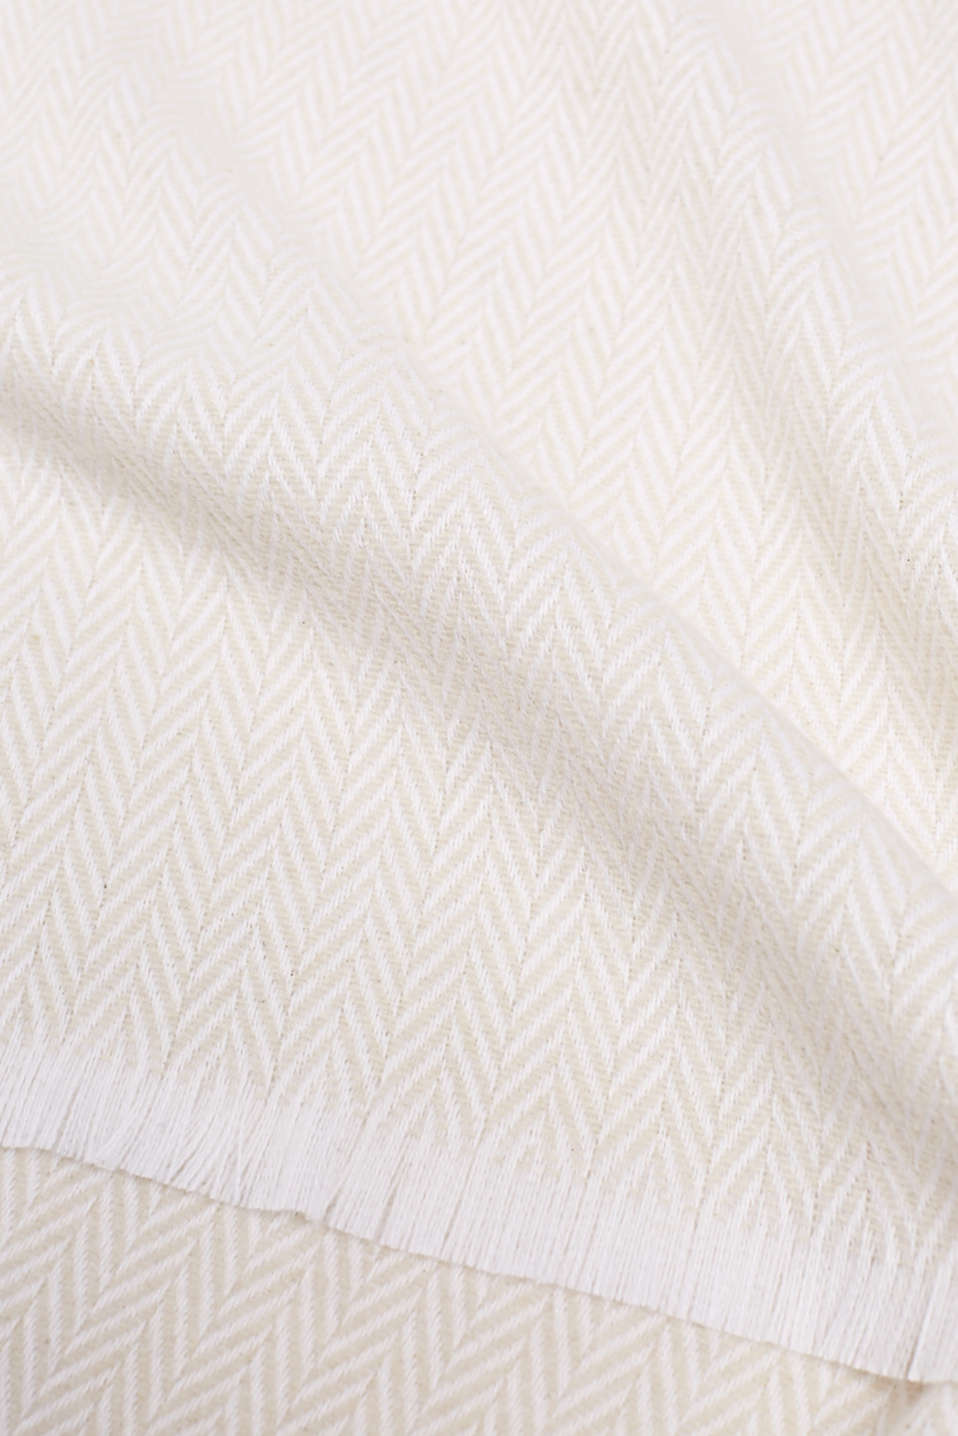 Throw with a herringbone pattern, NATURAL, detail image number 1